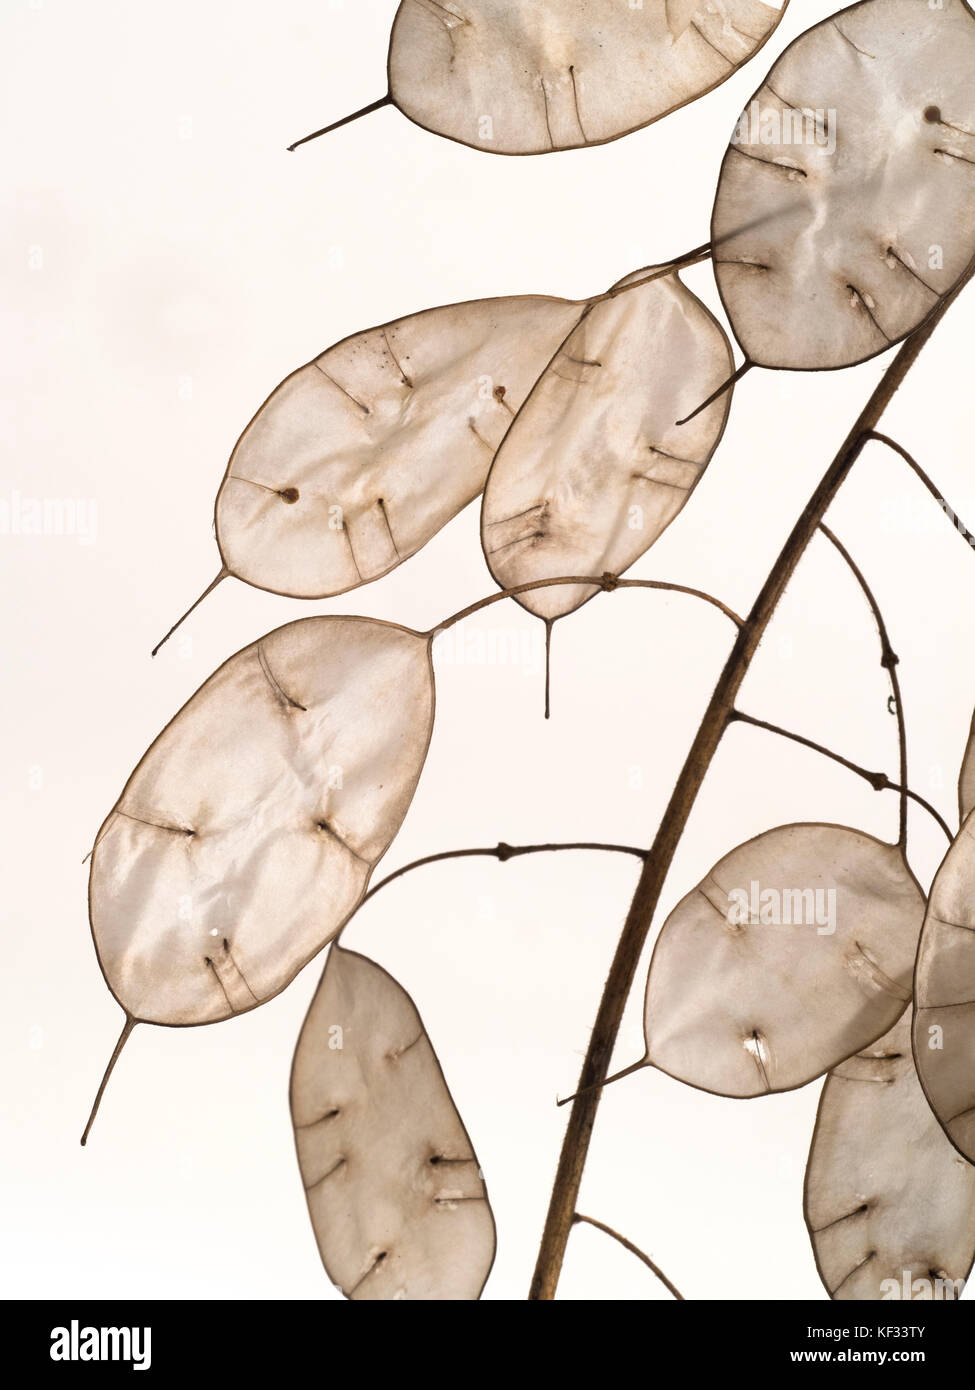 Annual honesty Lunaria annua seed heads Stock Photo